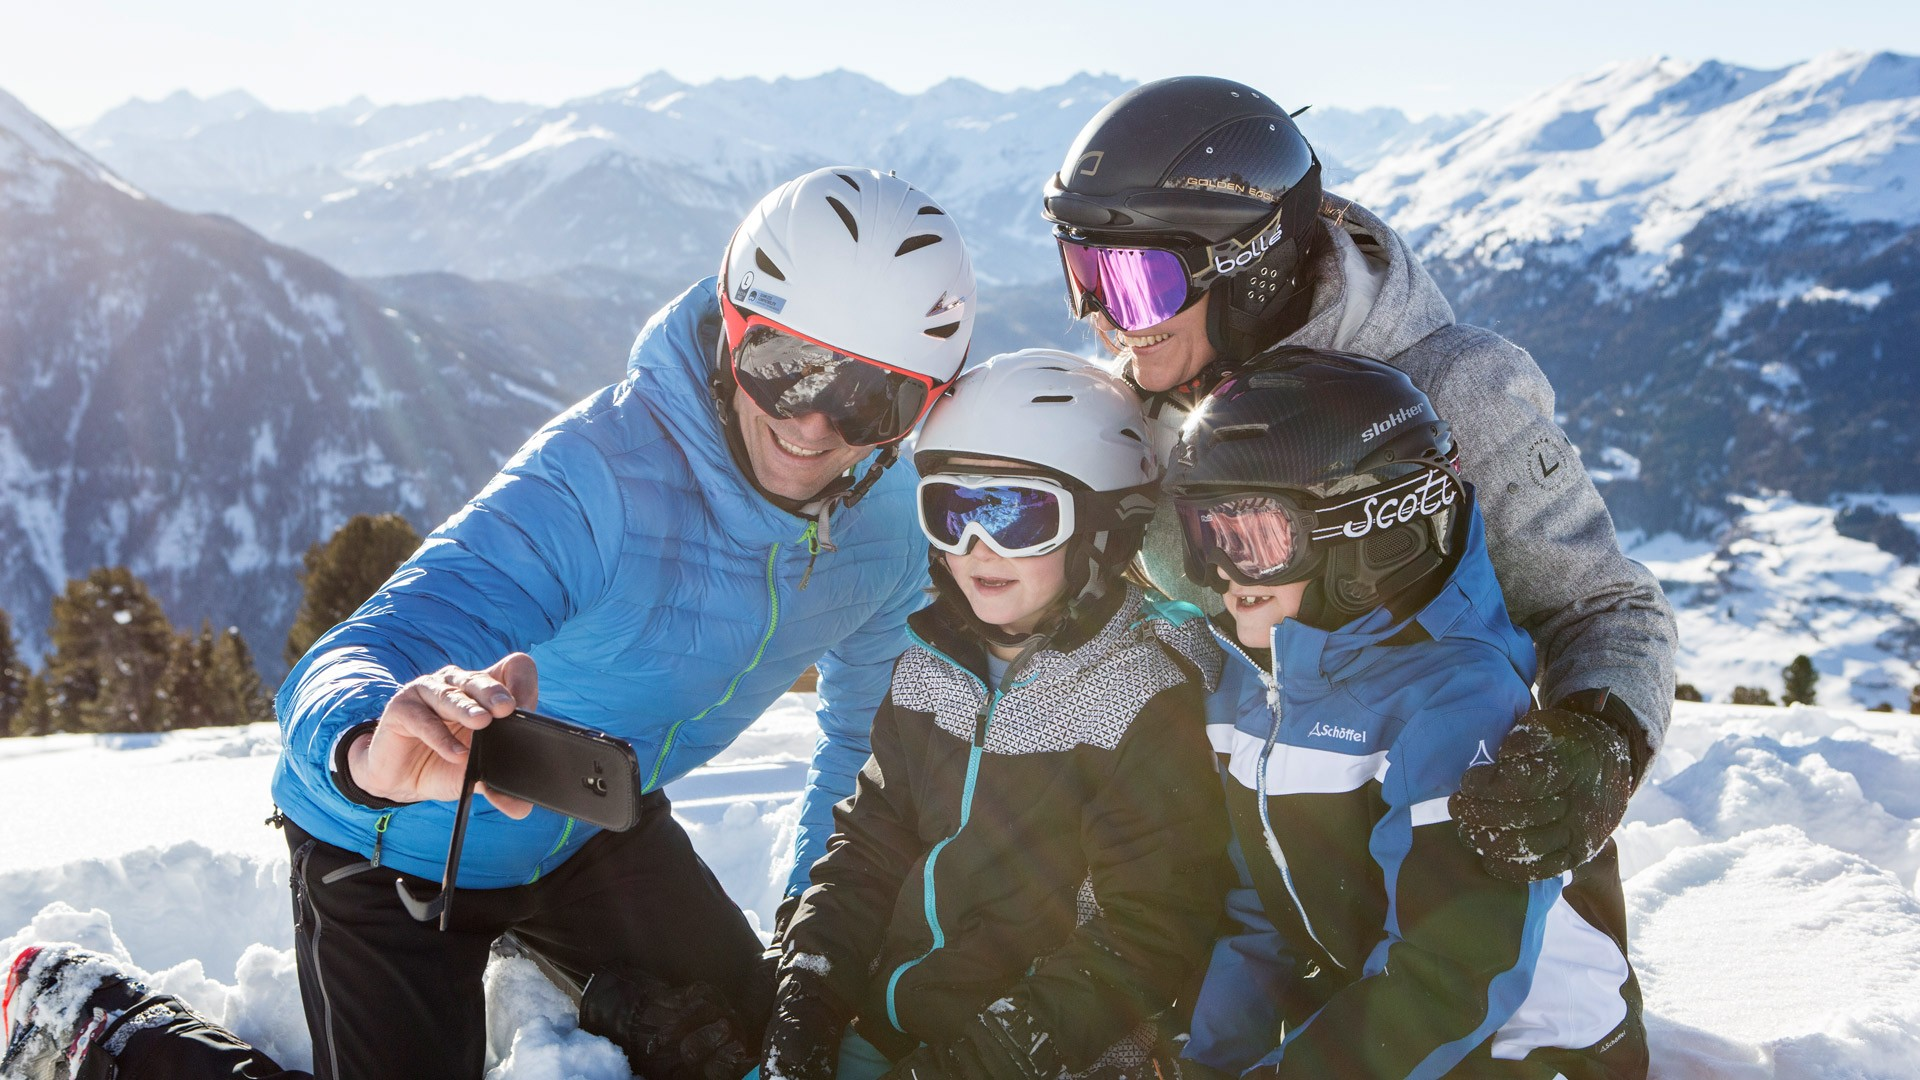 Family skiing Hochzeiger Pitztal